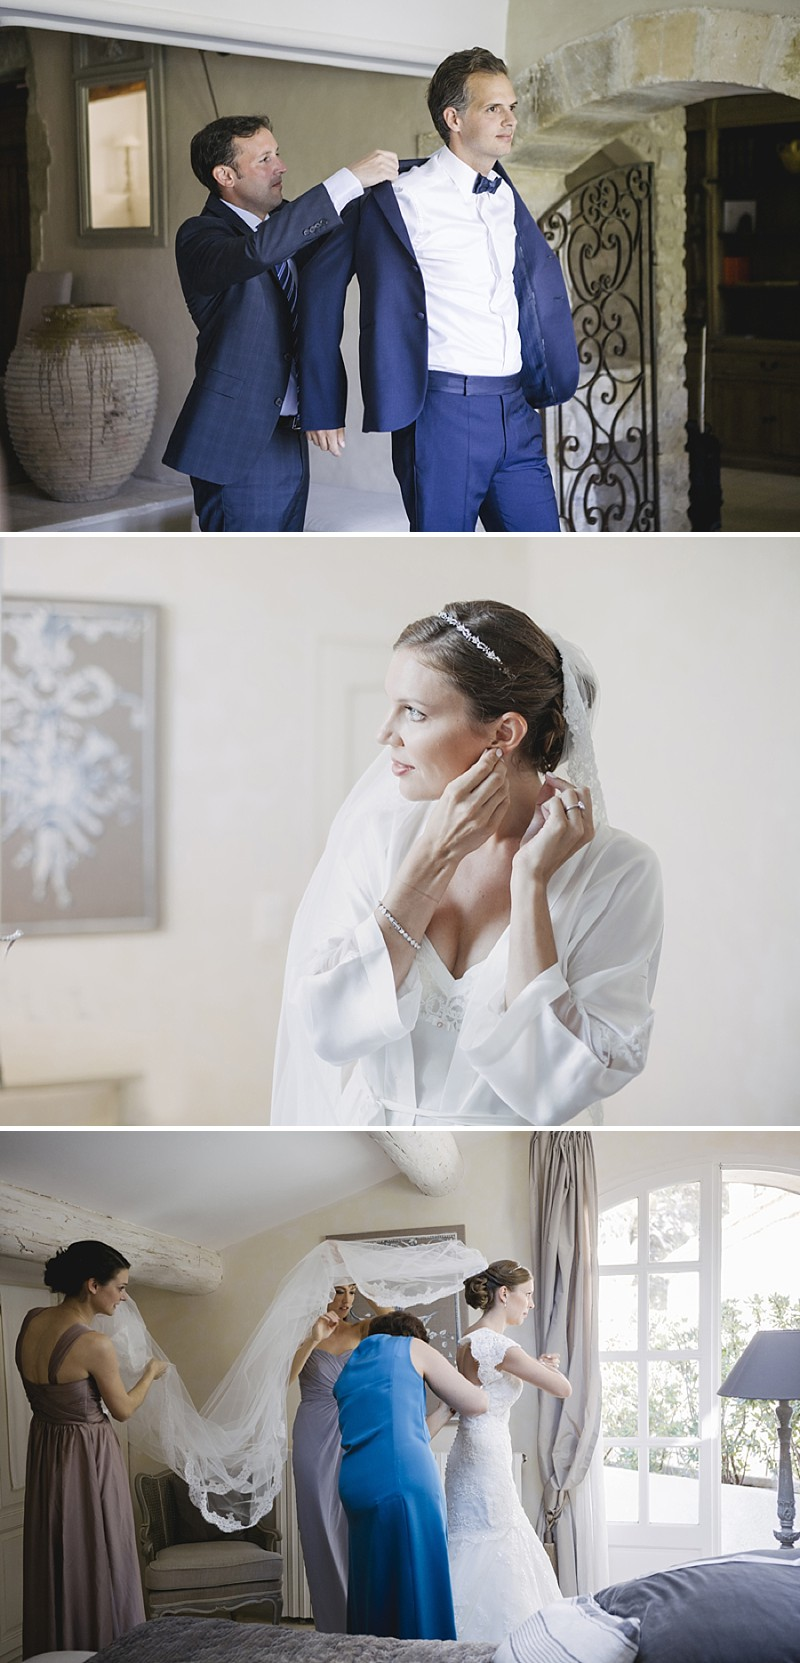 Elegant Wedding At Le Mas De La Rose Provence With Bride In Lace Fishtail Gown By Pronovias And Groom In Navy Armani Tuxedo With Images From Jo Hastings Wedding Photography_0003